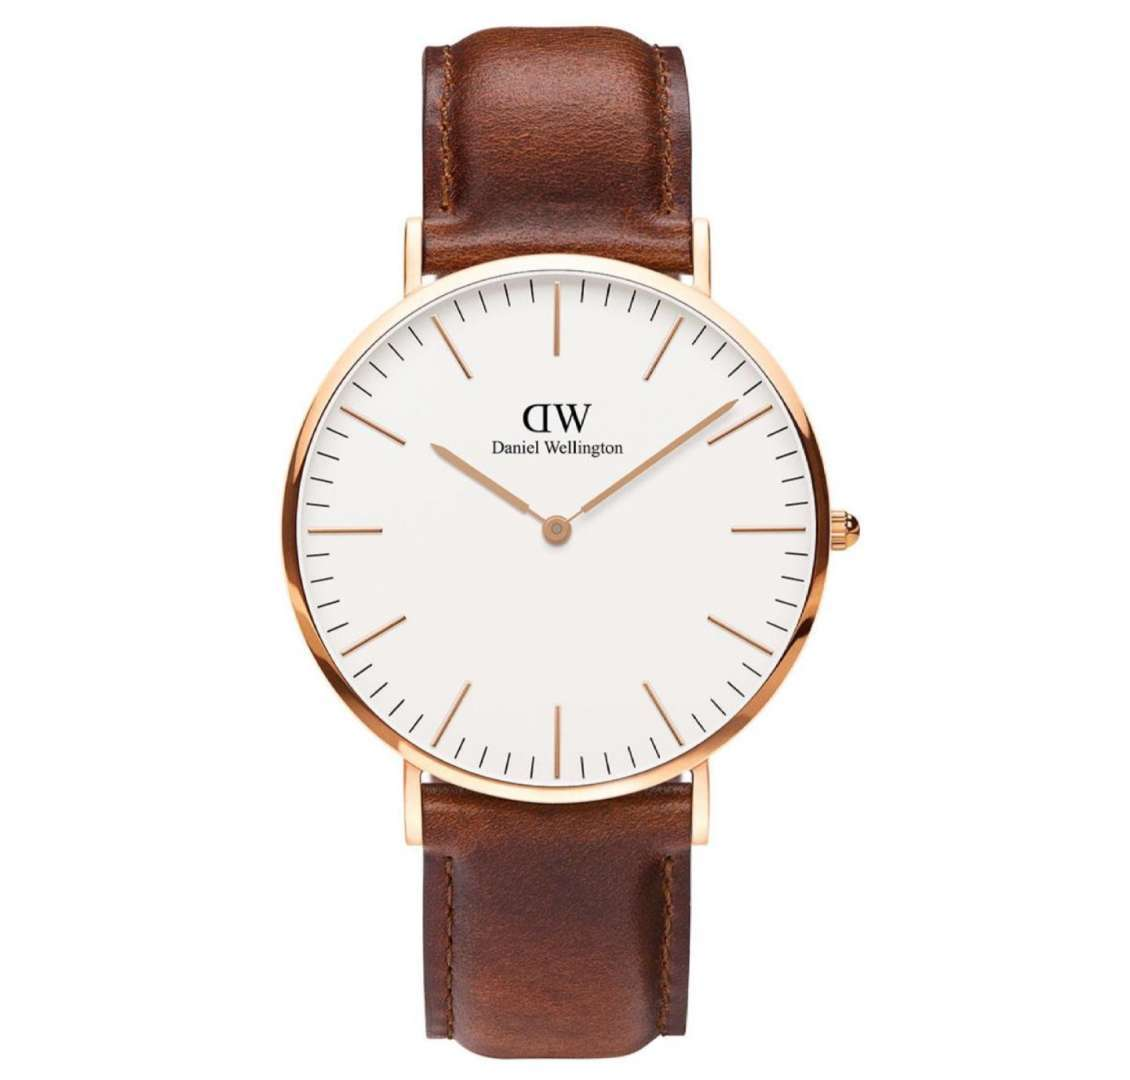 שעון יד אנלוגי daniel wellington dw00100035 דניאל וולינגטון